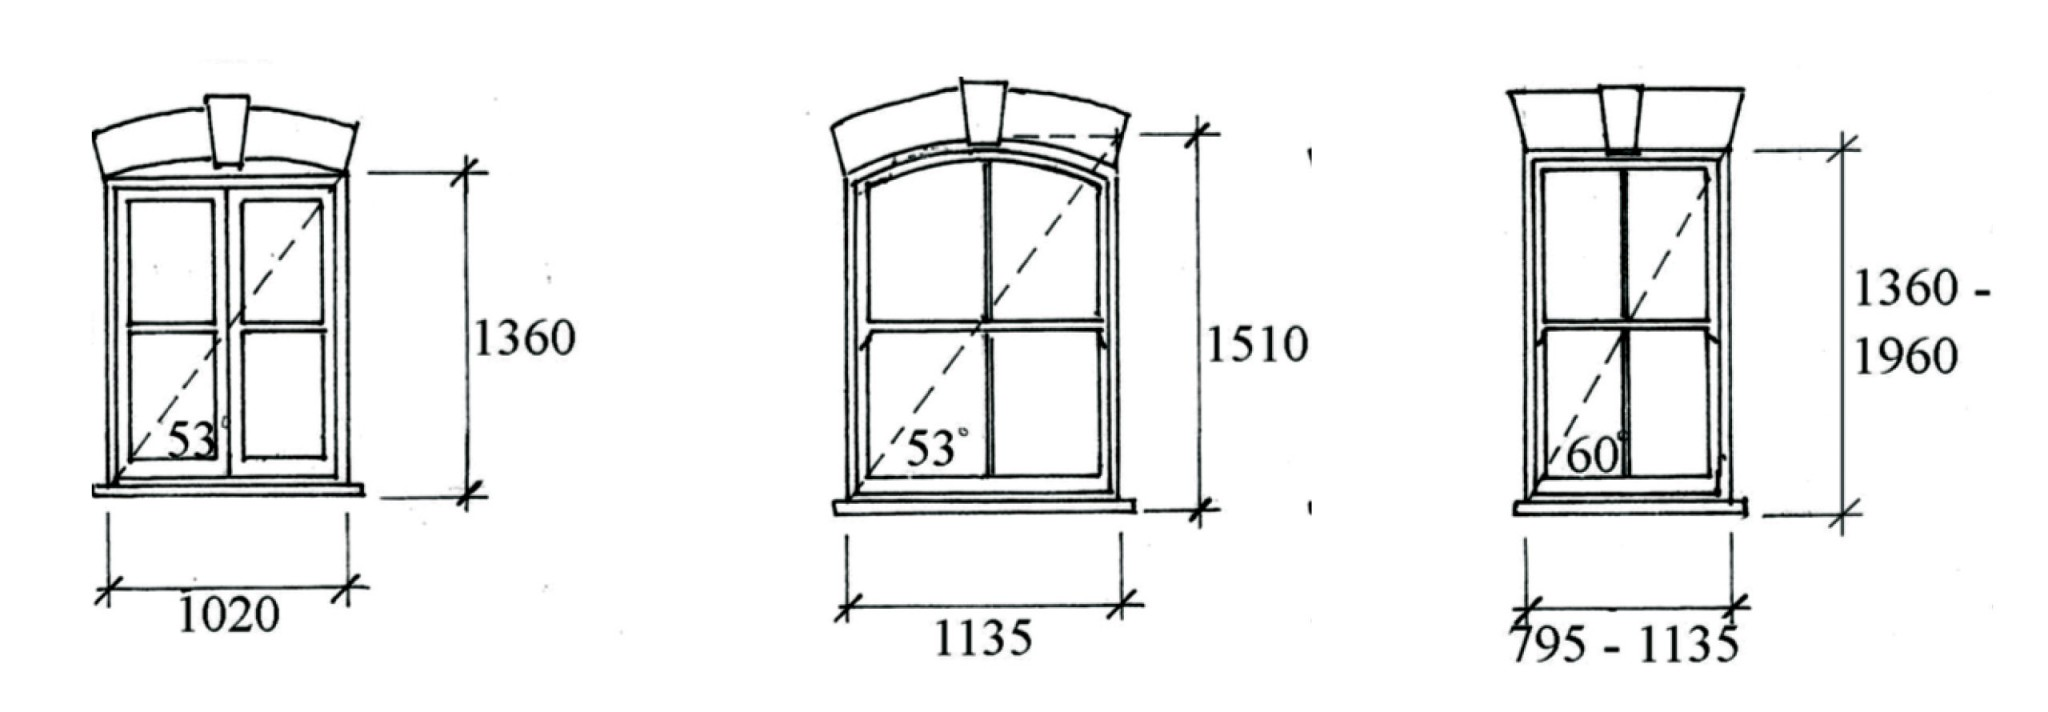 Sketch of three windows with measurements